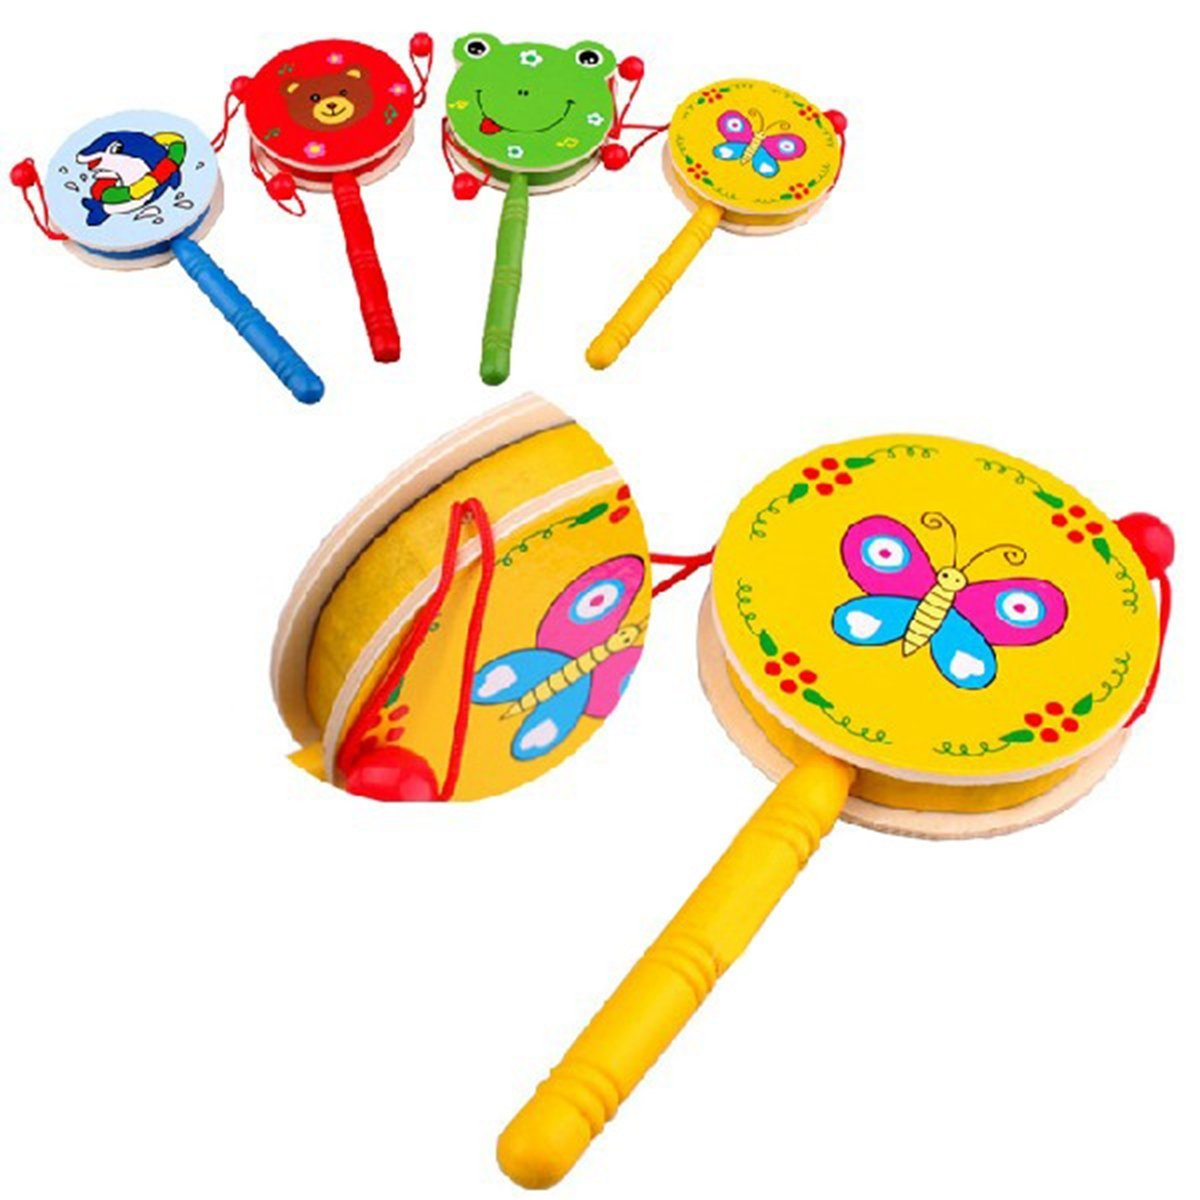 Bell Musical Toys : Baby kid wooden musical hand bell shaking rattle drum toy